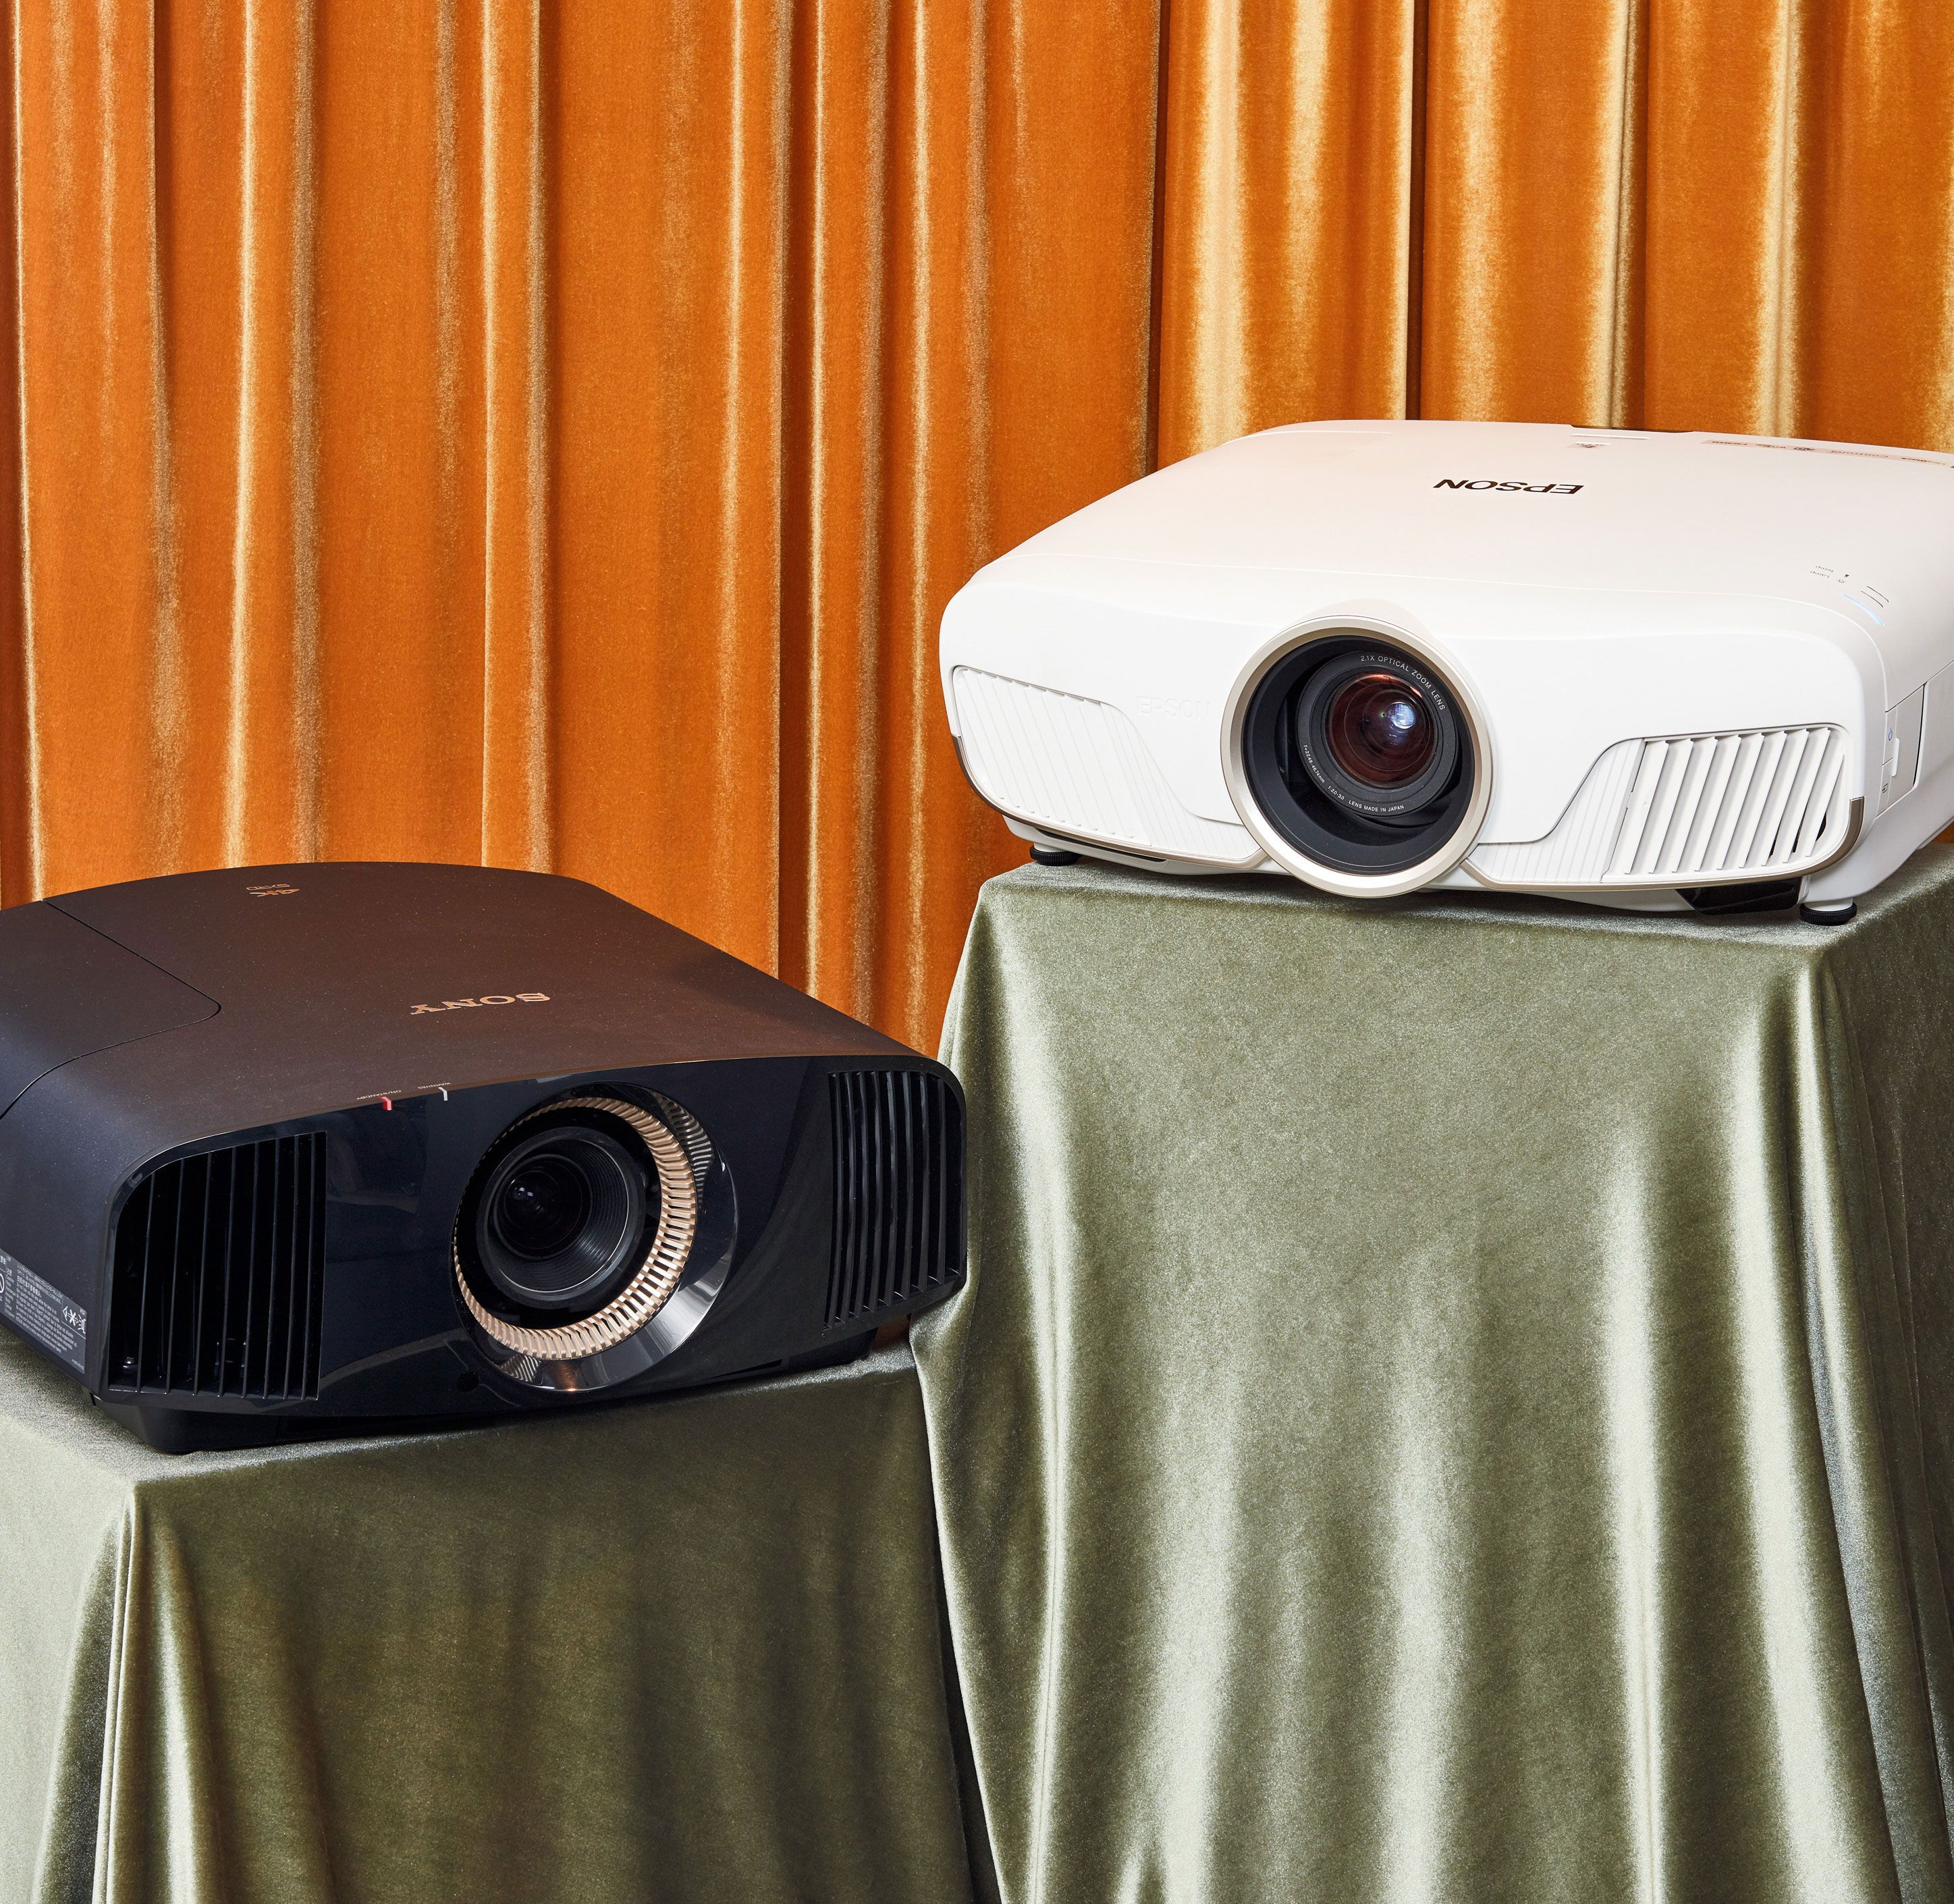 small resolution of home theater wiring articles 2 killer projectors for your home theater hometheater wiringarticles